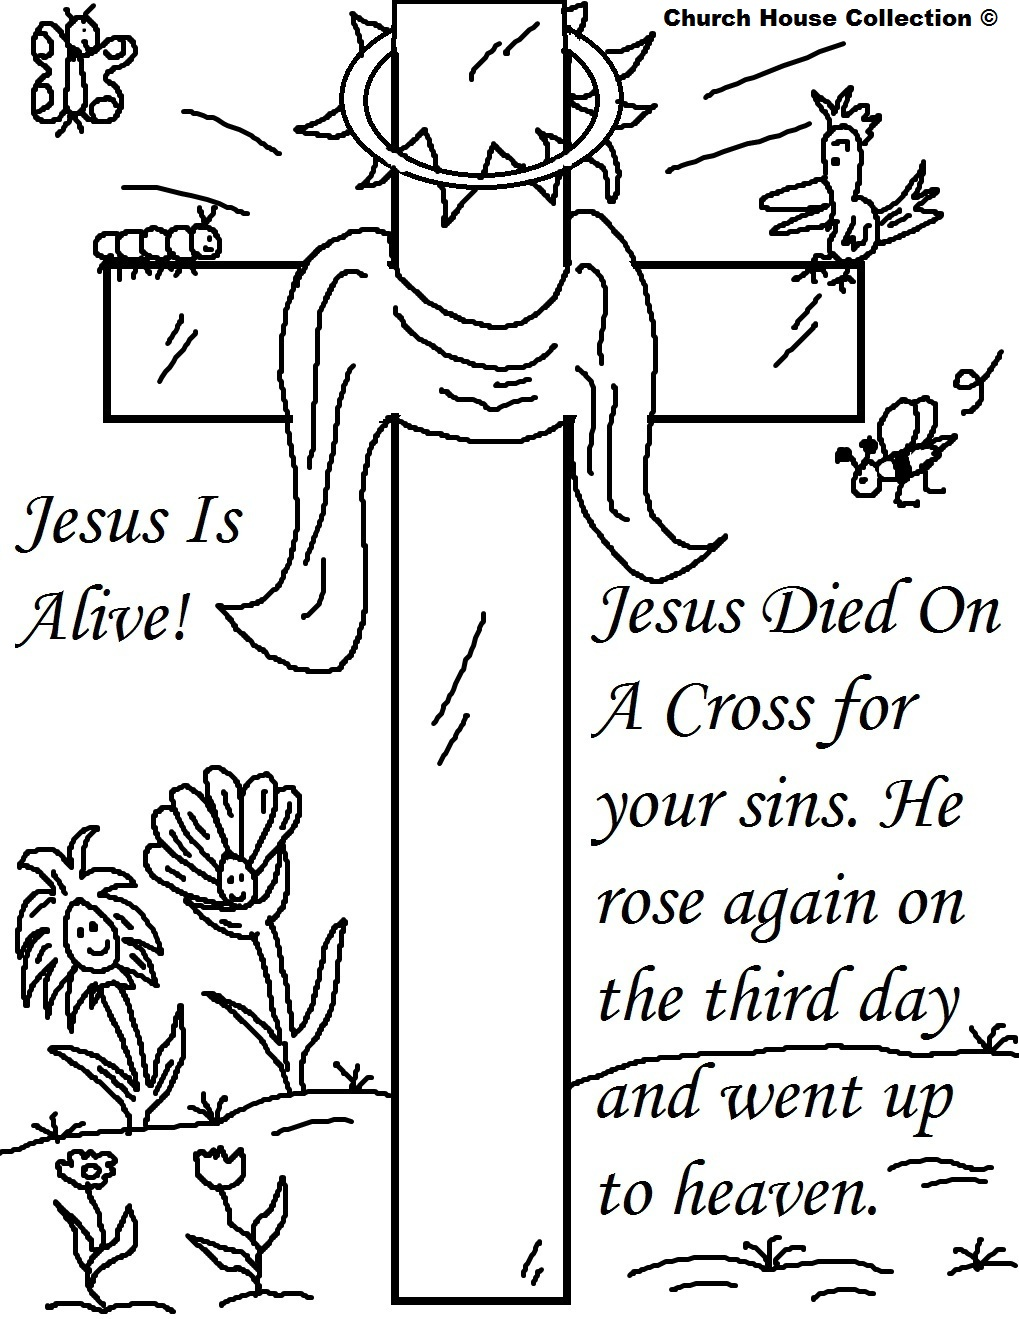 25 Religious Easter Coloring Pages Free Easter Activity Christian Easter Coloring Pages